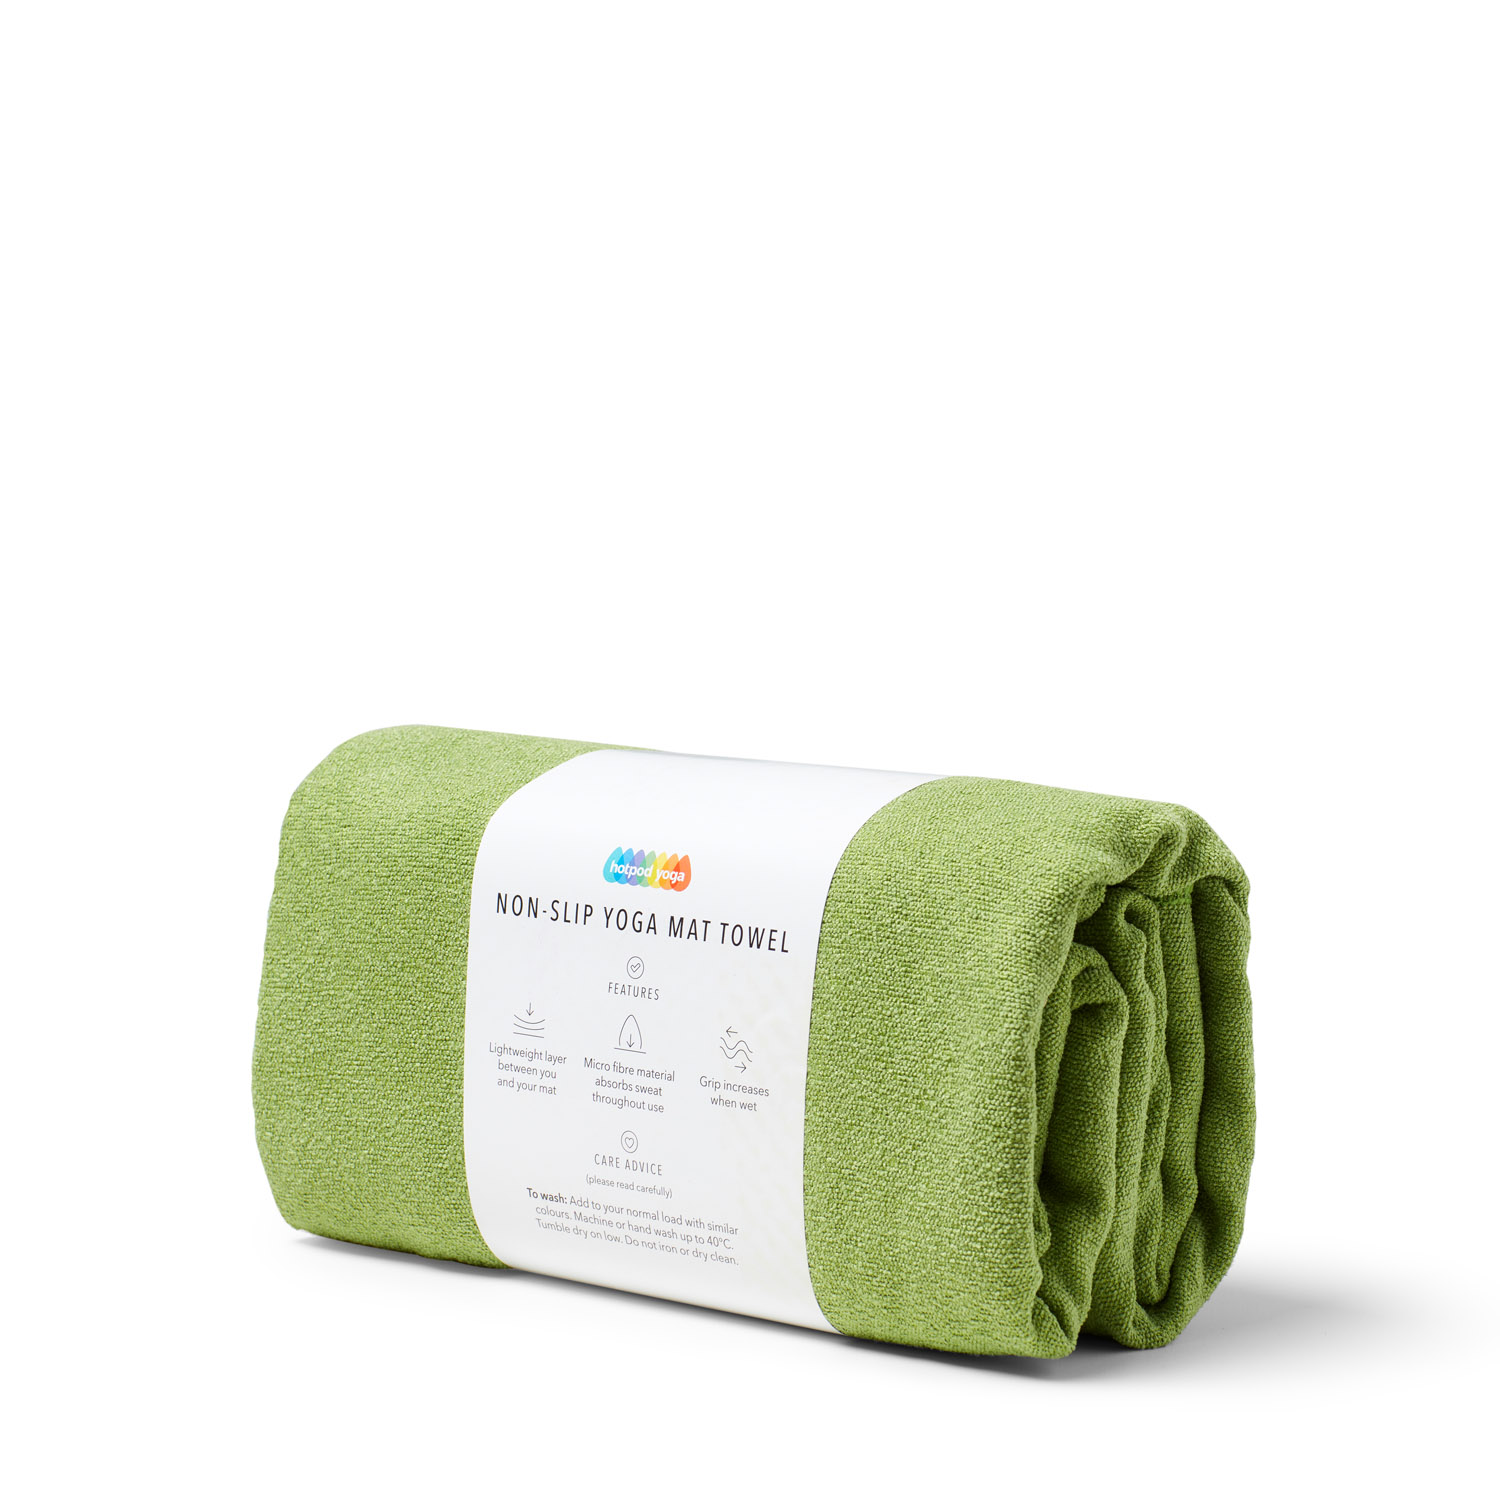 Non-Slip Yoga Towel - Green